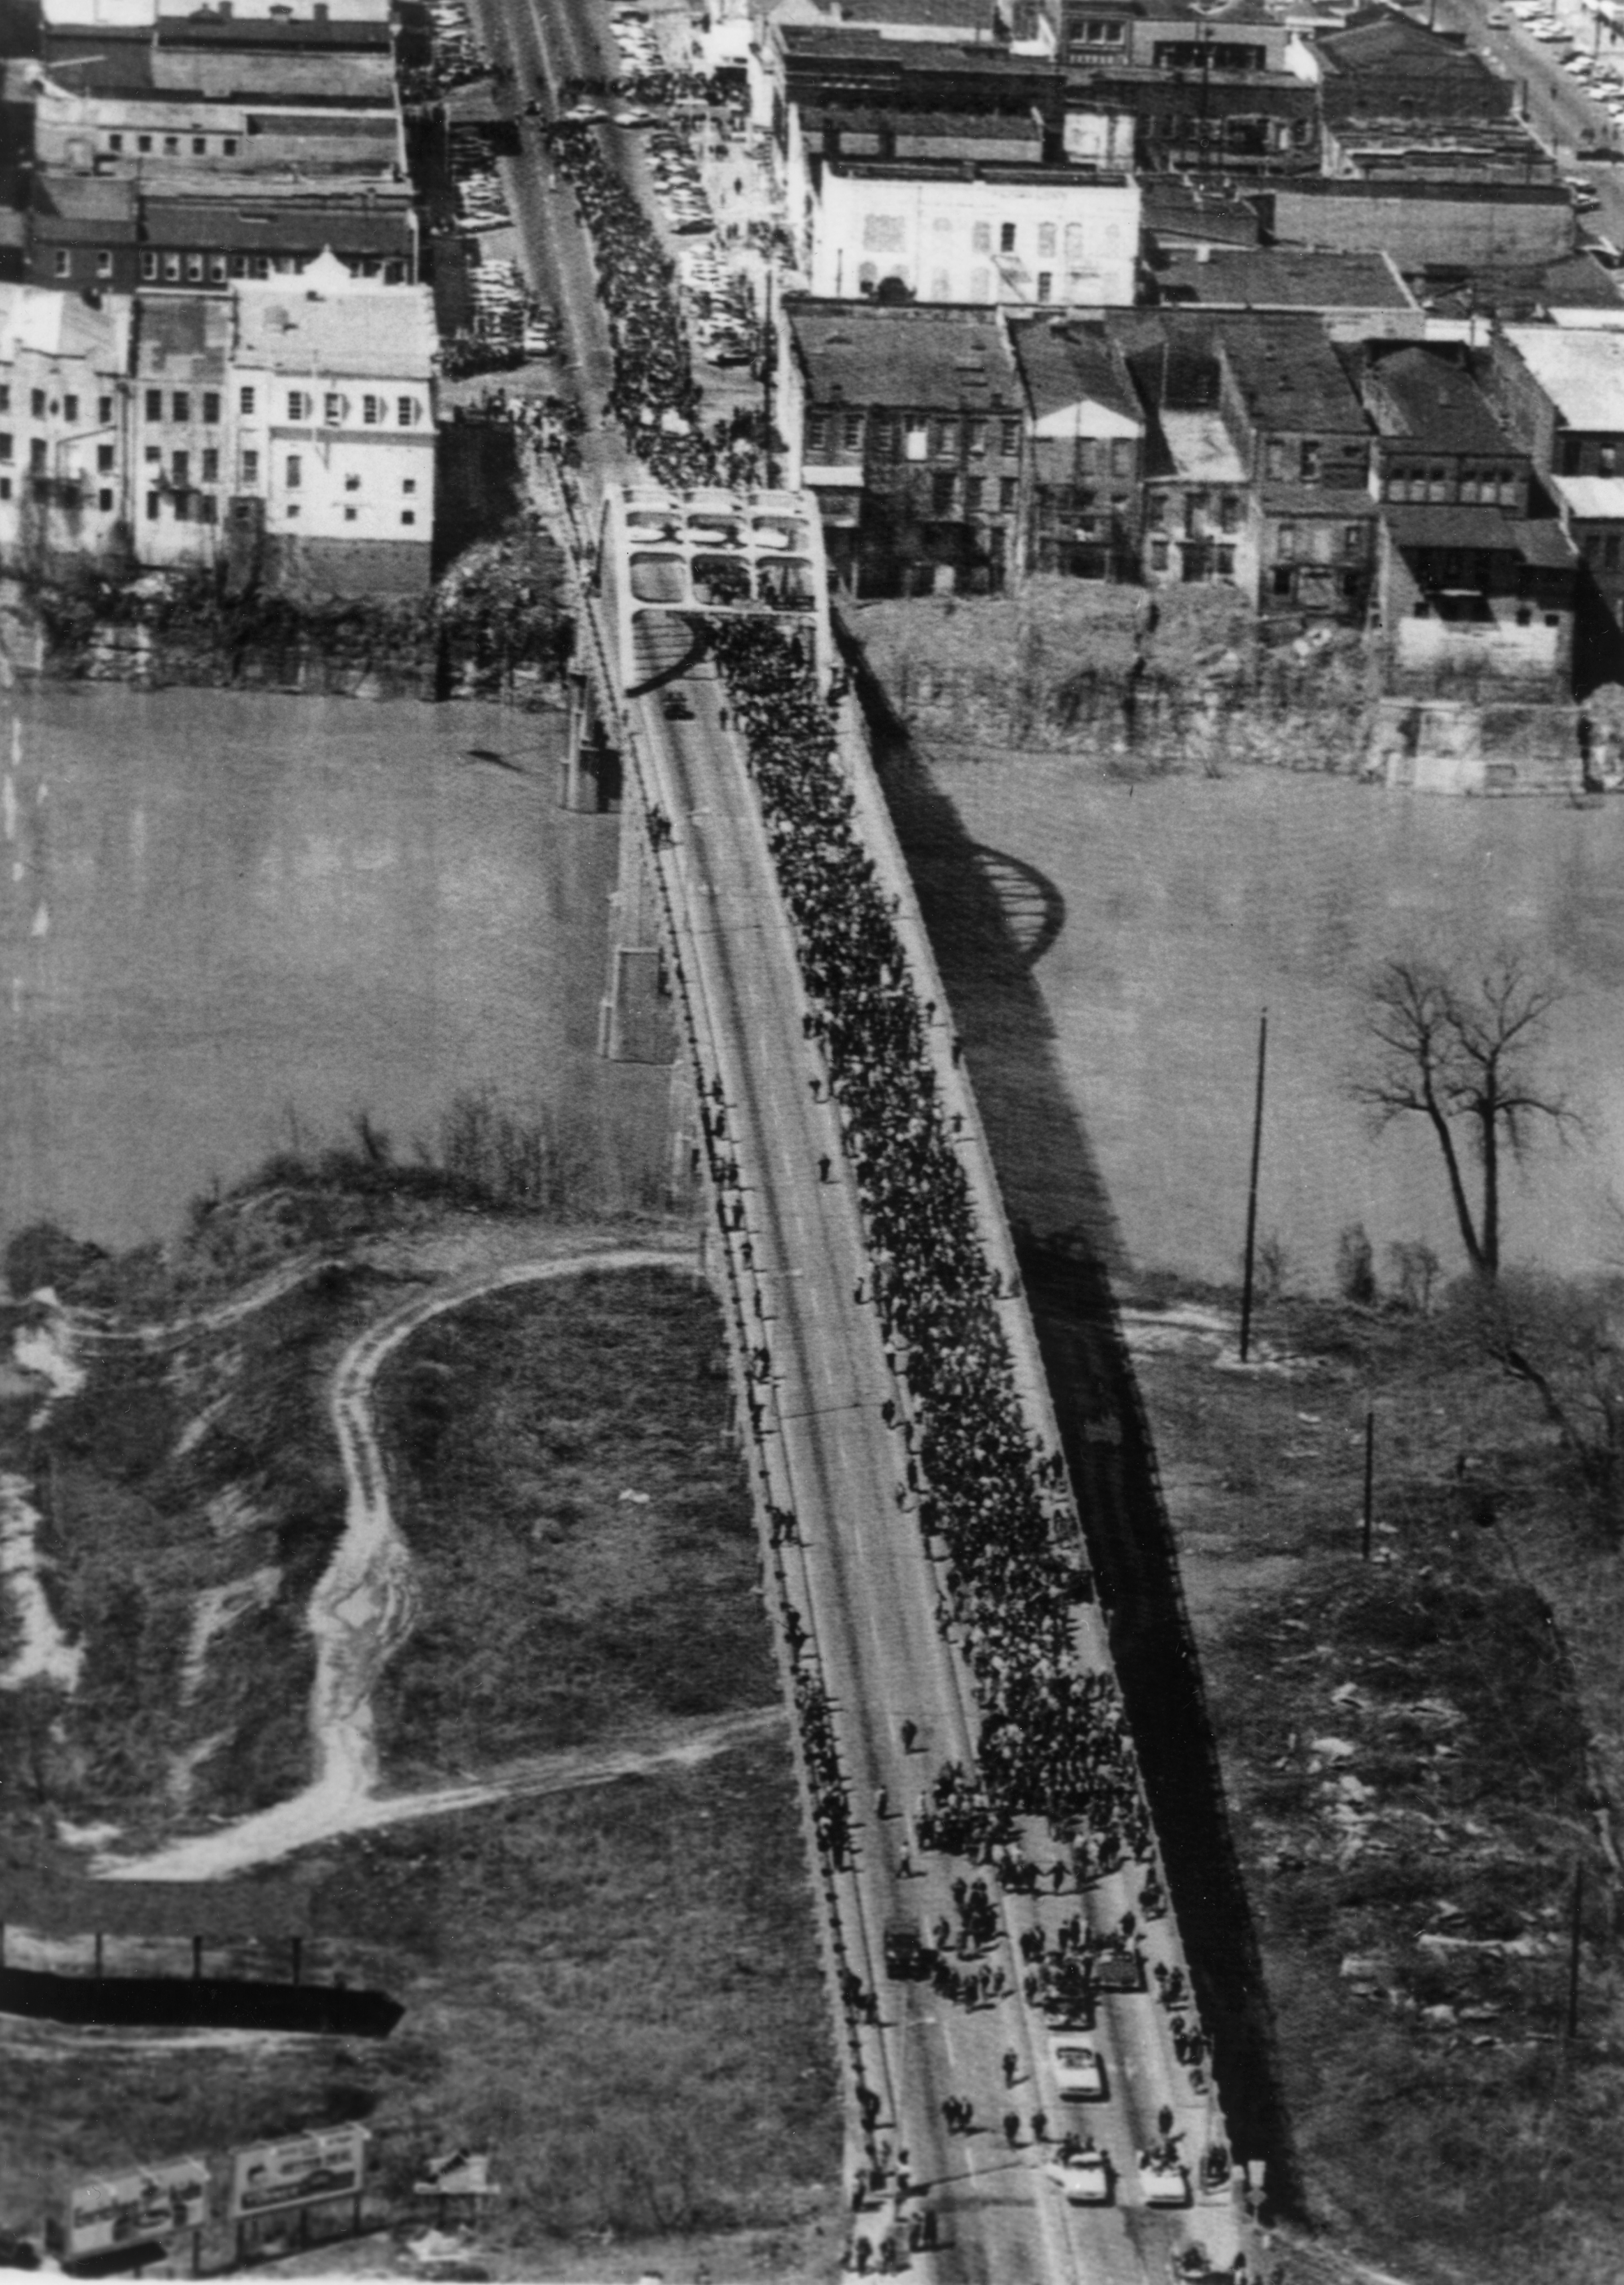 A group of an estimated 3,200 Civil Rights demonstrators crossing the Edmund Pettus Bridge in Selma, March 21, 1965. (Records of the United States Information Agency, National Archives)